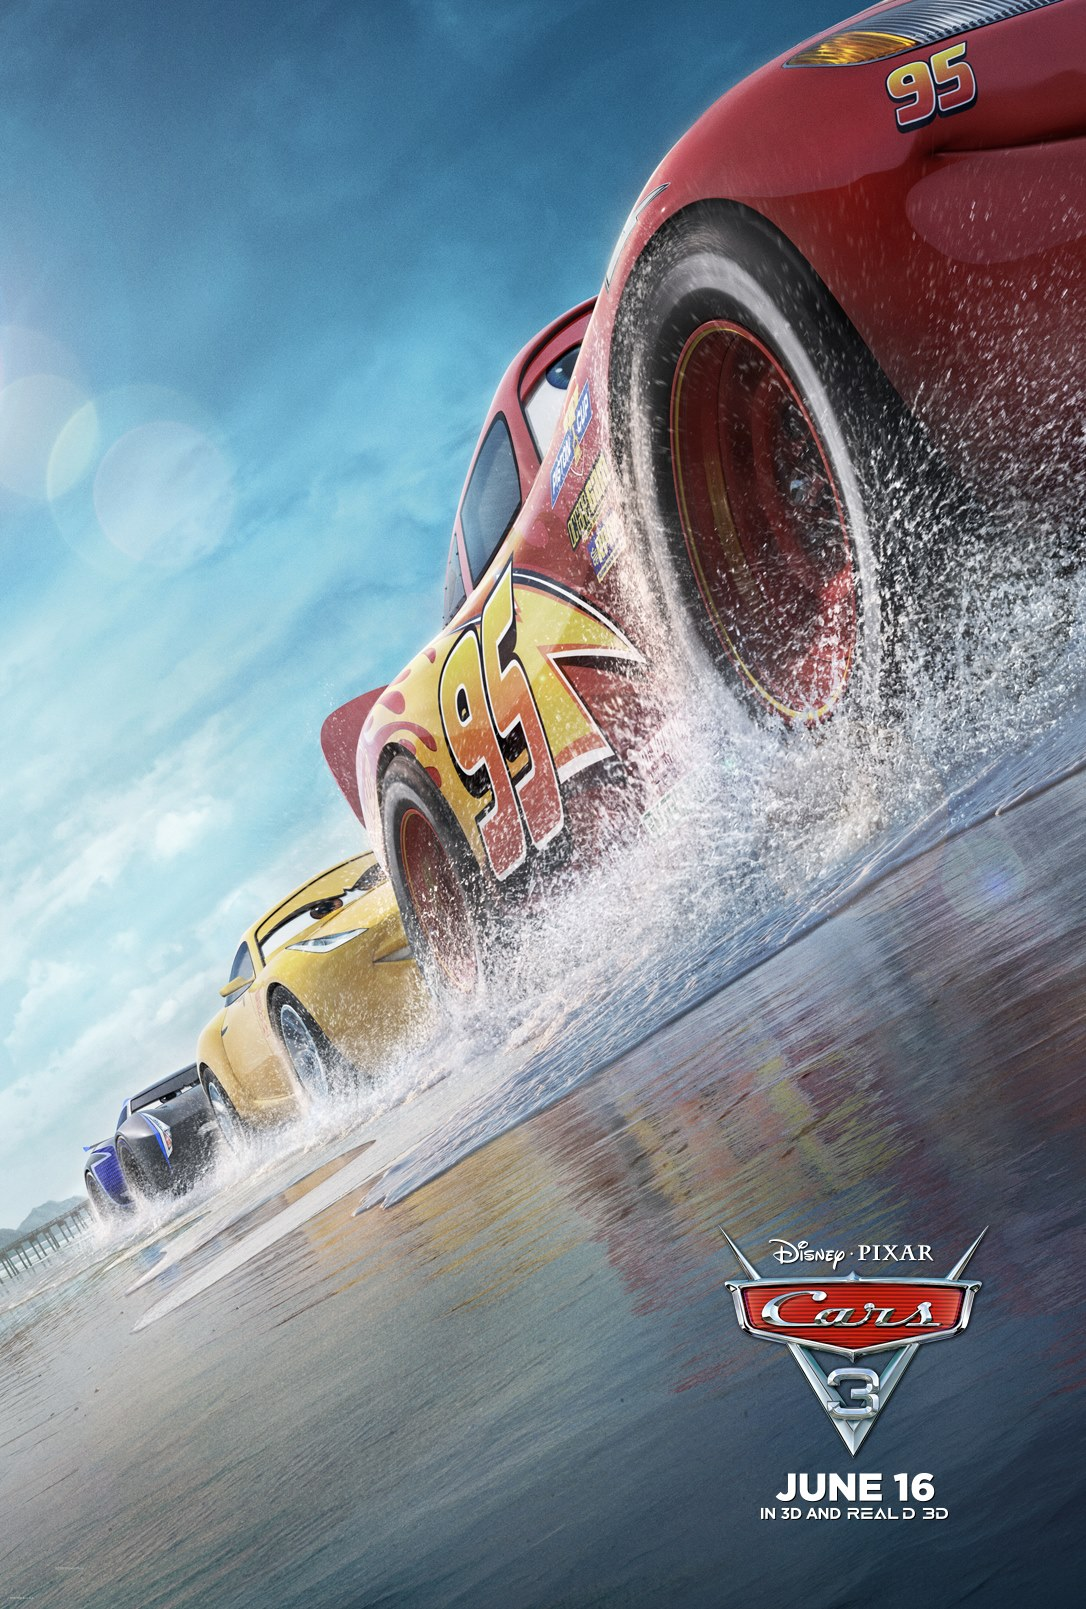 Watch The Cars 3 Rivalry Trailer |